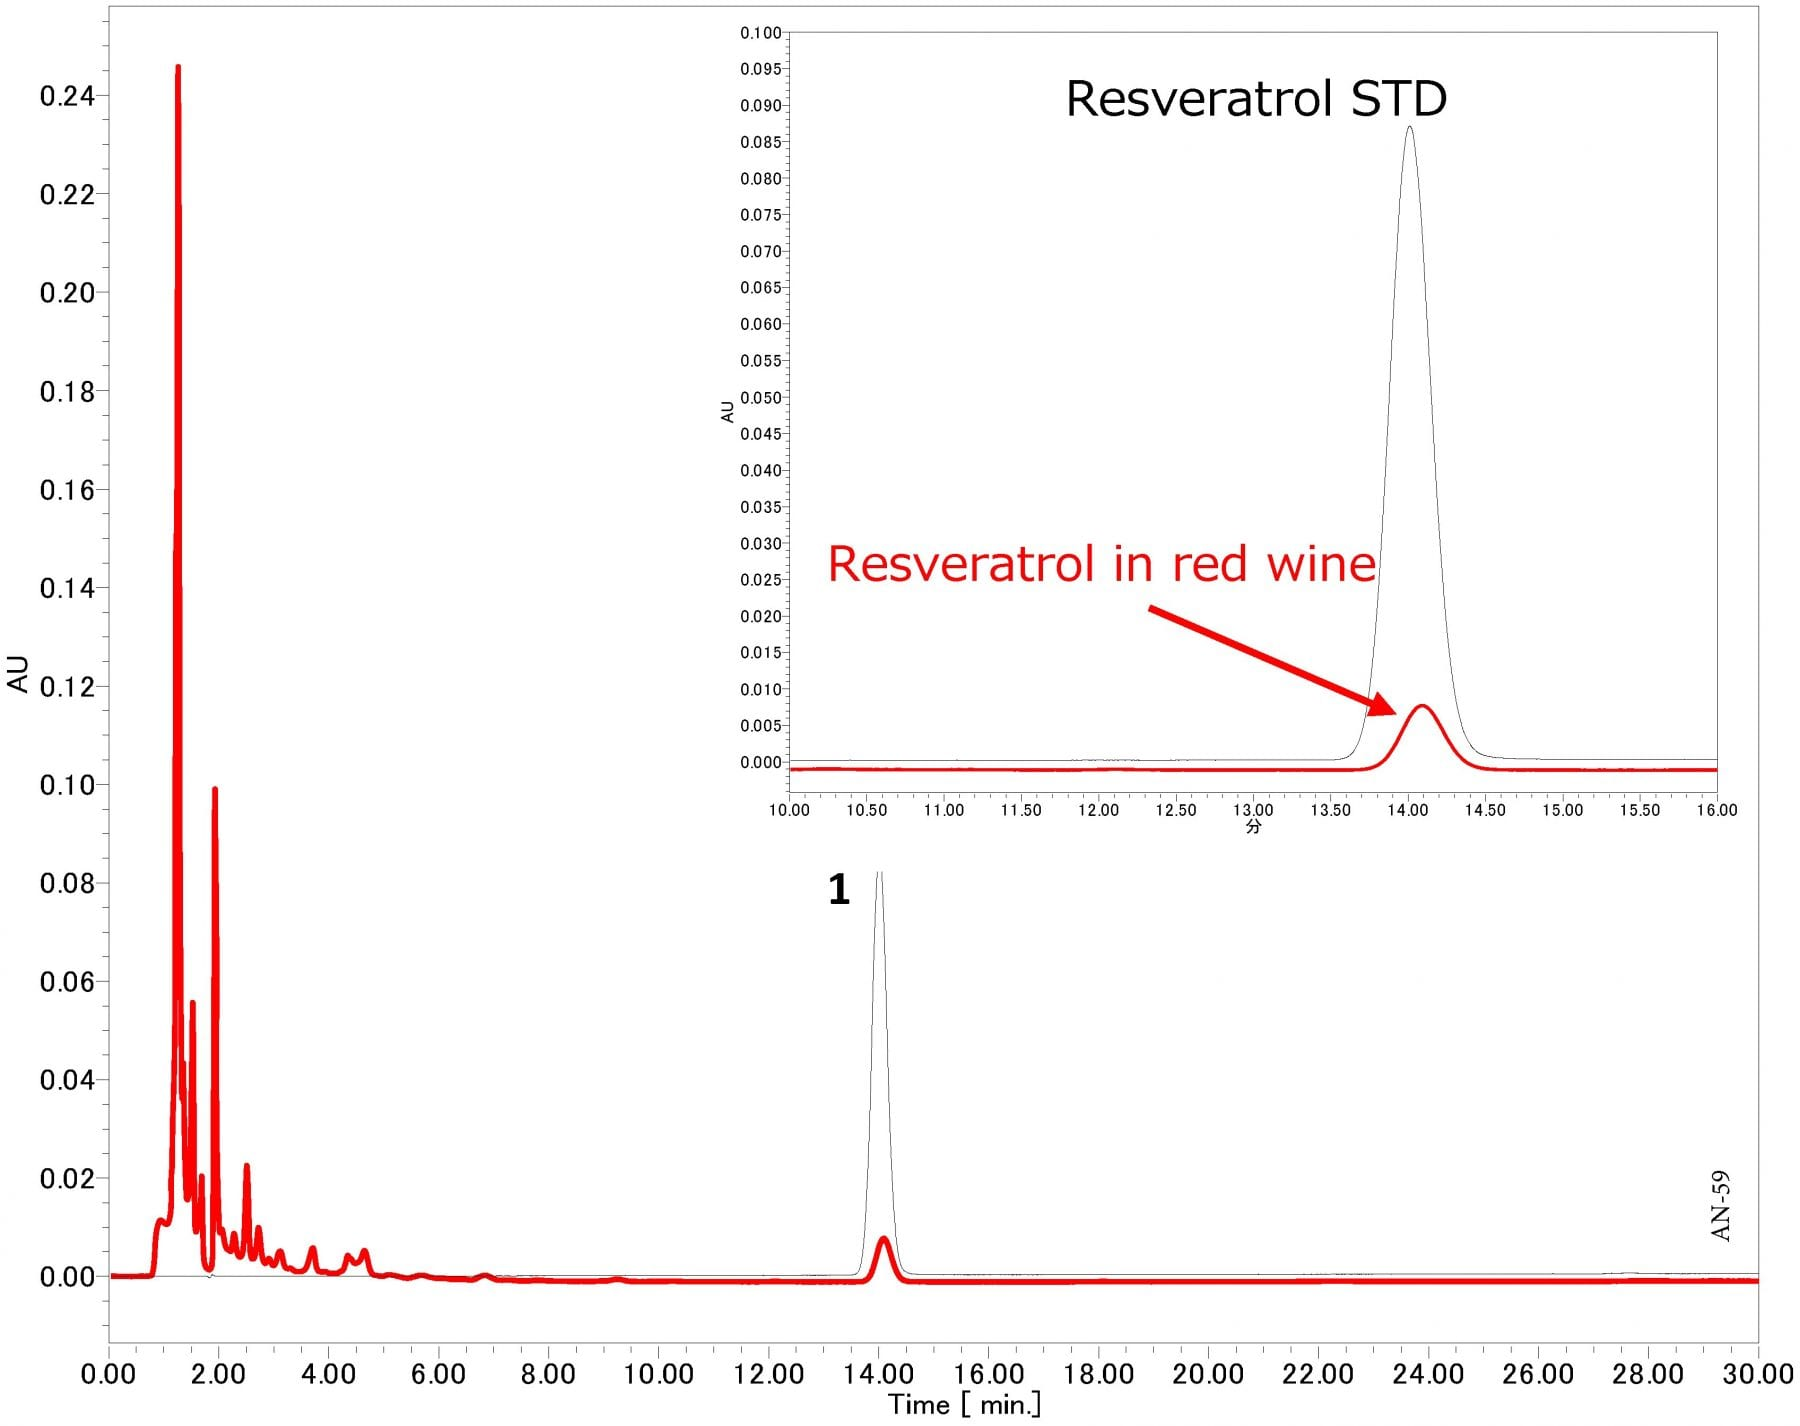 Analysis of Resveratrol in Red Wine using HPLC-UV